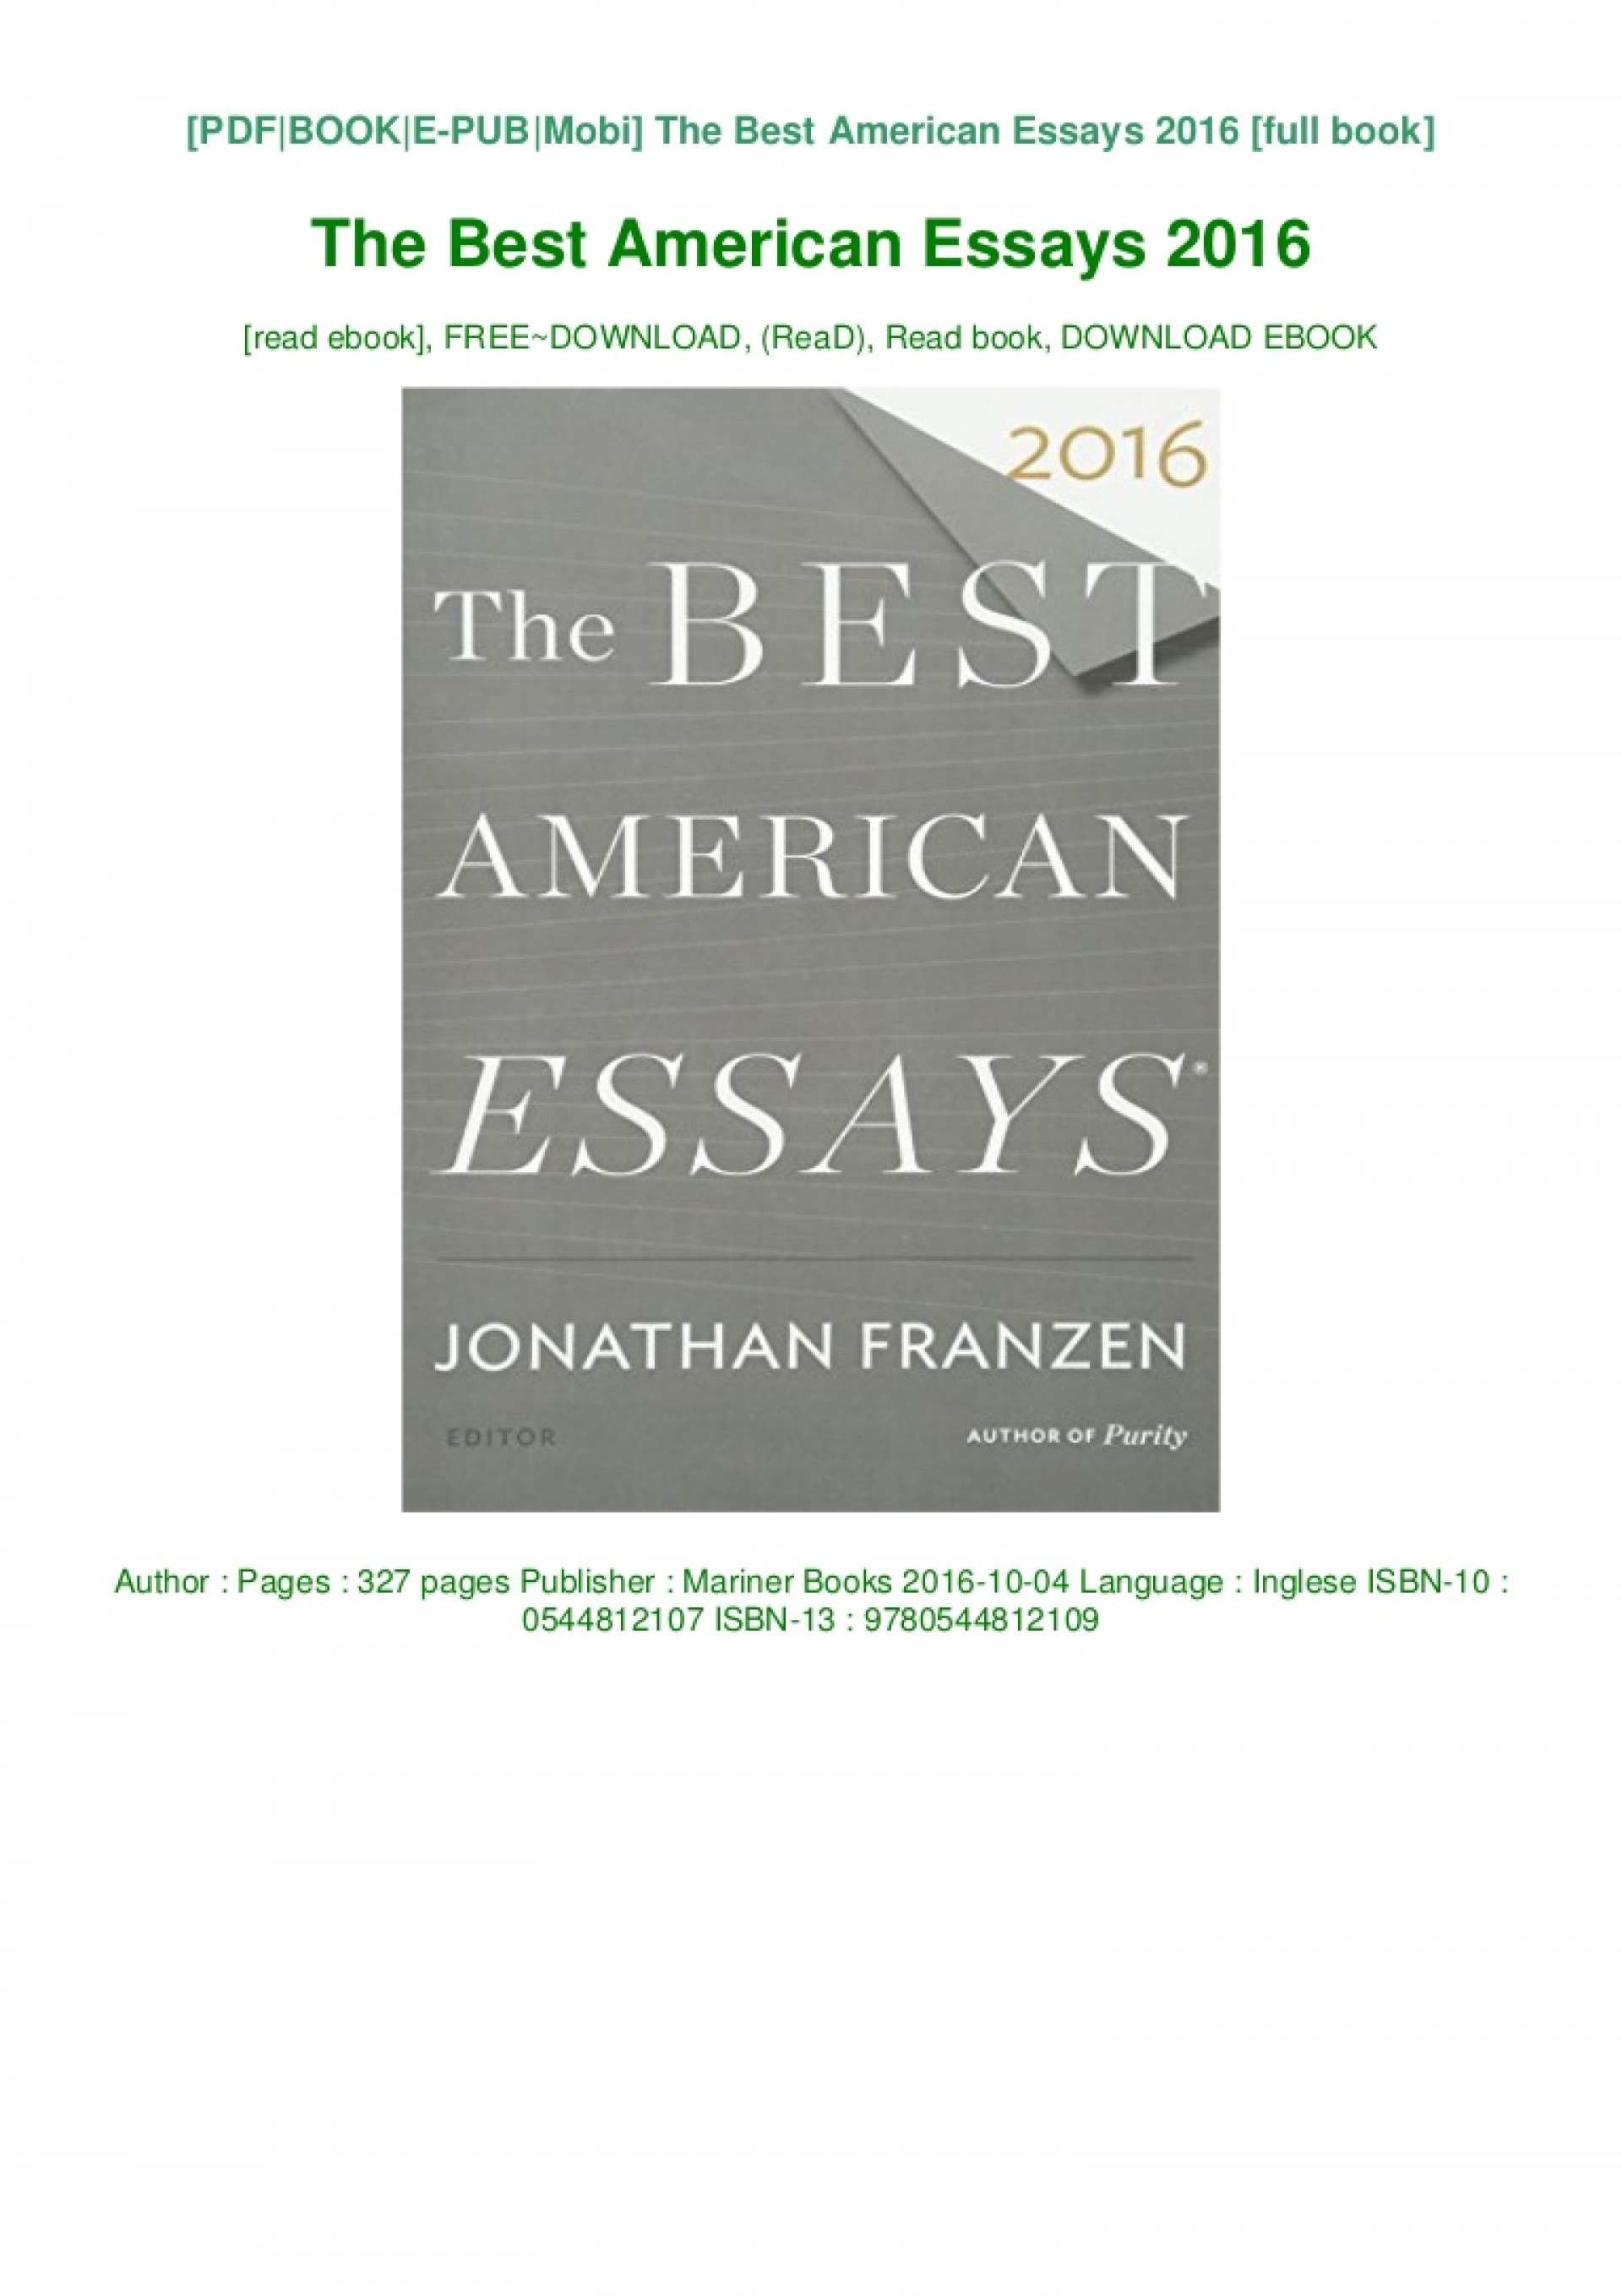 014 The Best American Essays Essay Example Download Pdf Epub Audiobook Ebook Thumbnail Wonderful 2013 Of Century Sparknotes 2017 1920